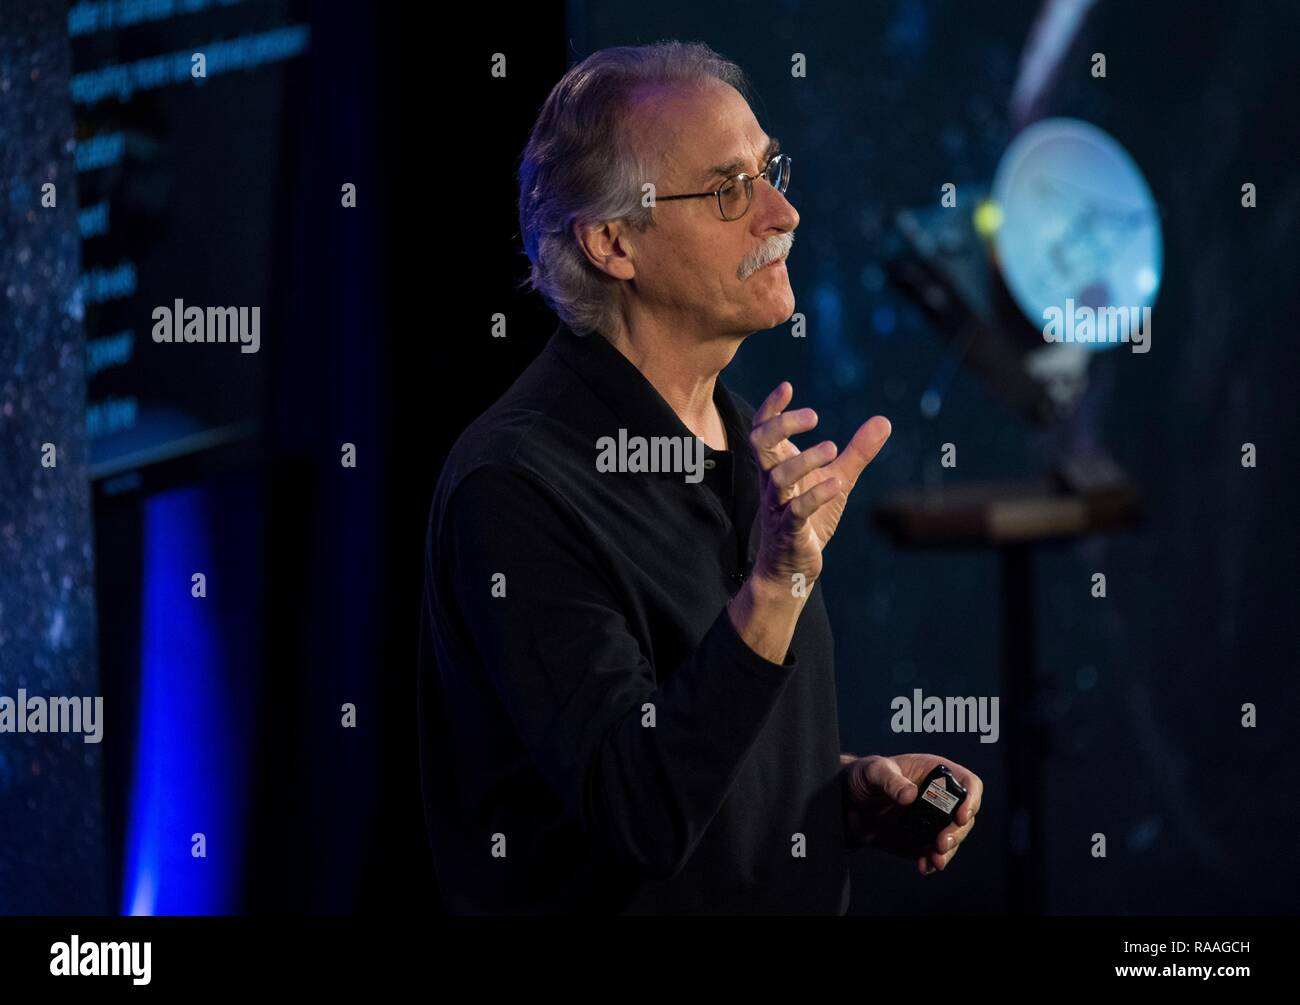 New Horizons co-investigator John Spencer during the press conference prior to the expected flyby of Ultima Thule by the spacecraft at Johns Hopkins University Applied Physics Laboratory December 31, 2018 in Laurel, Maryland. The flyby by the space probe occurred 6.5bn km (4bn miles) away, making it the most distant ever exploration of an object in our Solar System. Stock Photo